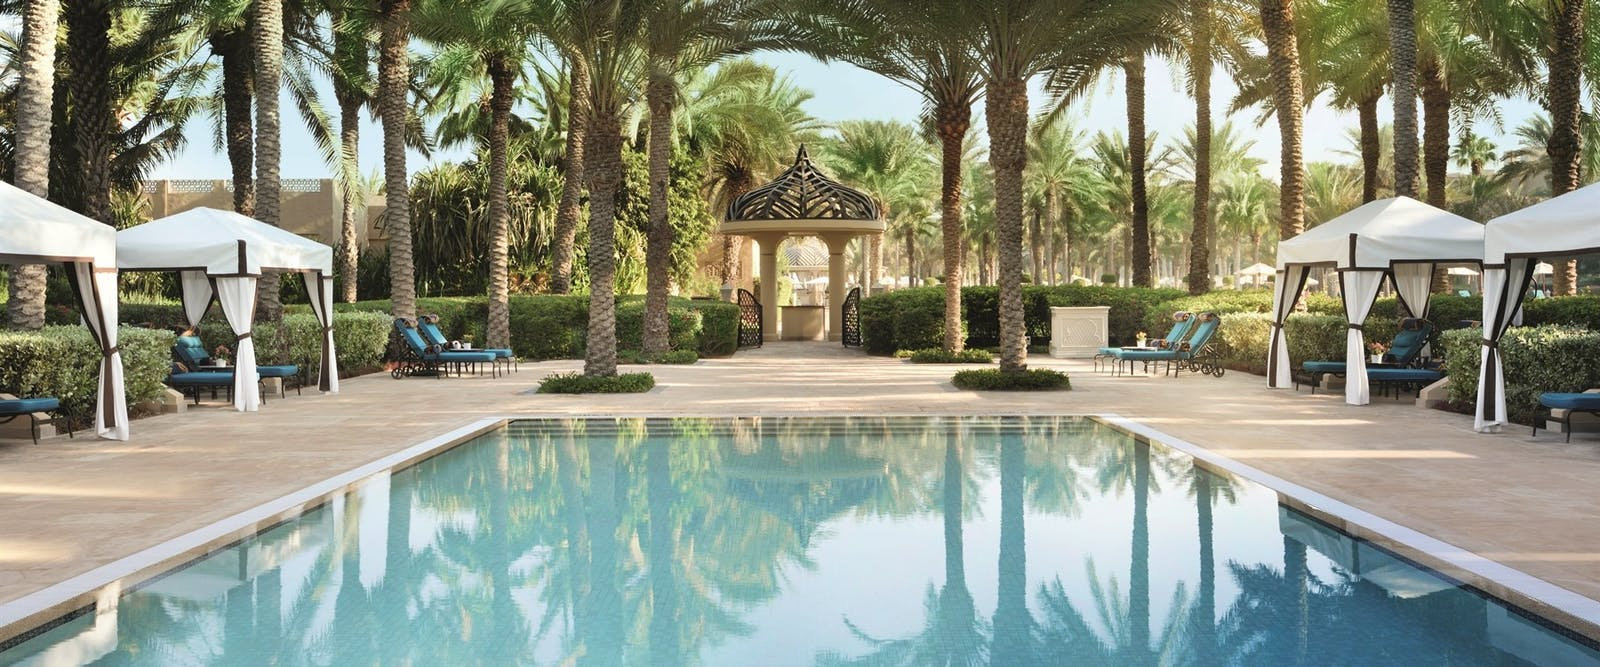 Pool Area at One&Only Royal Mirage - The Palace, Dubai